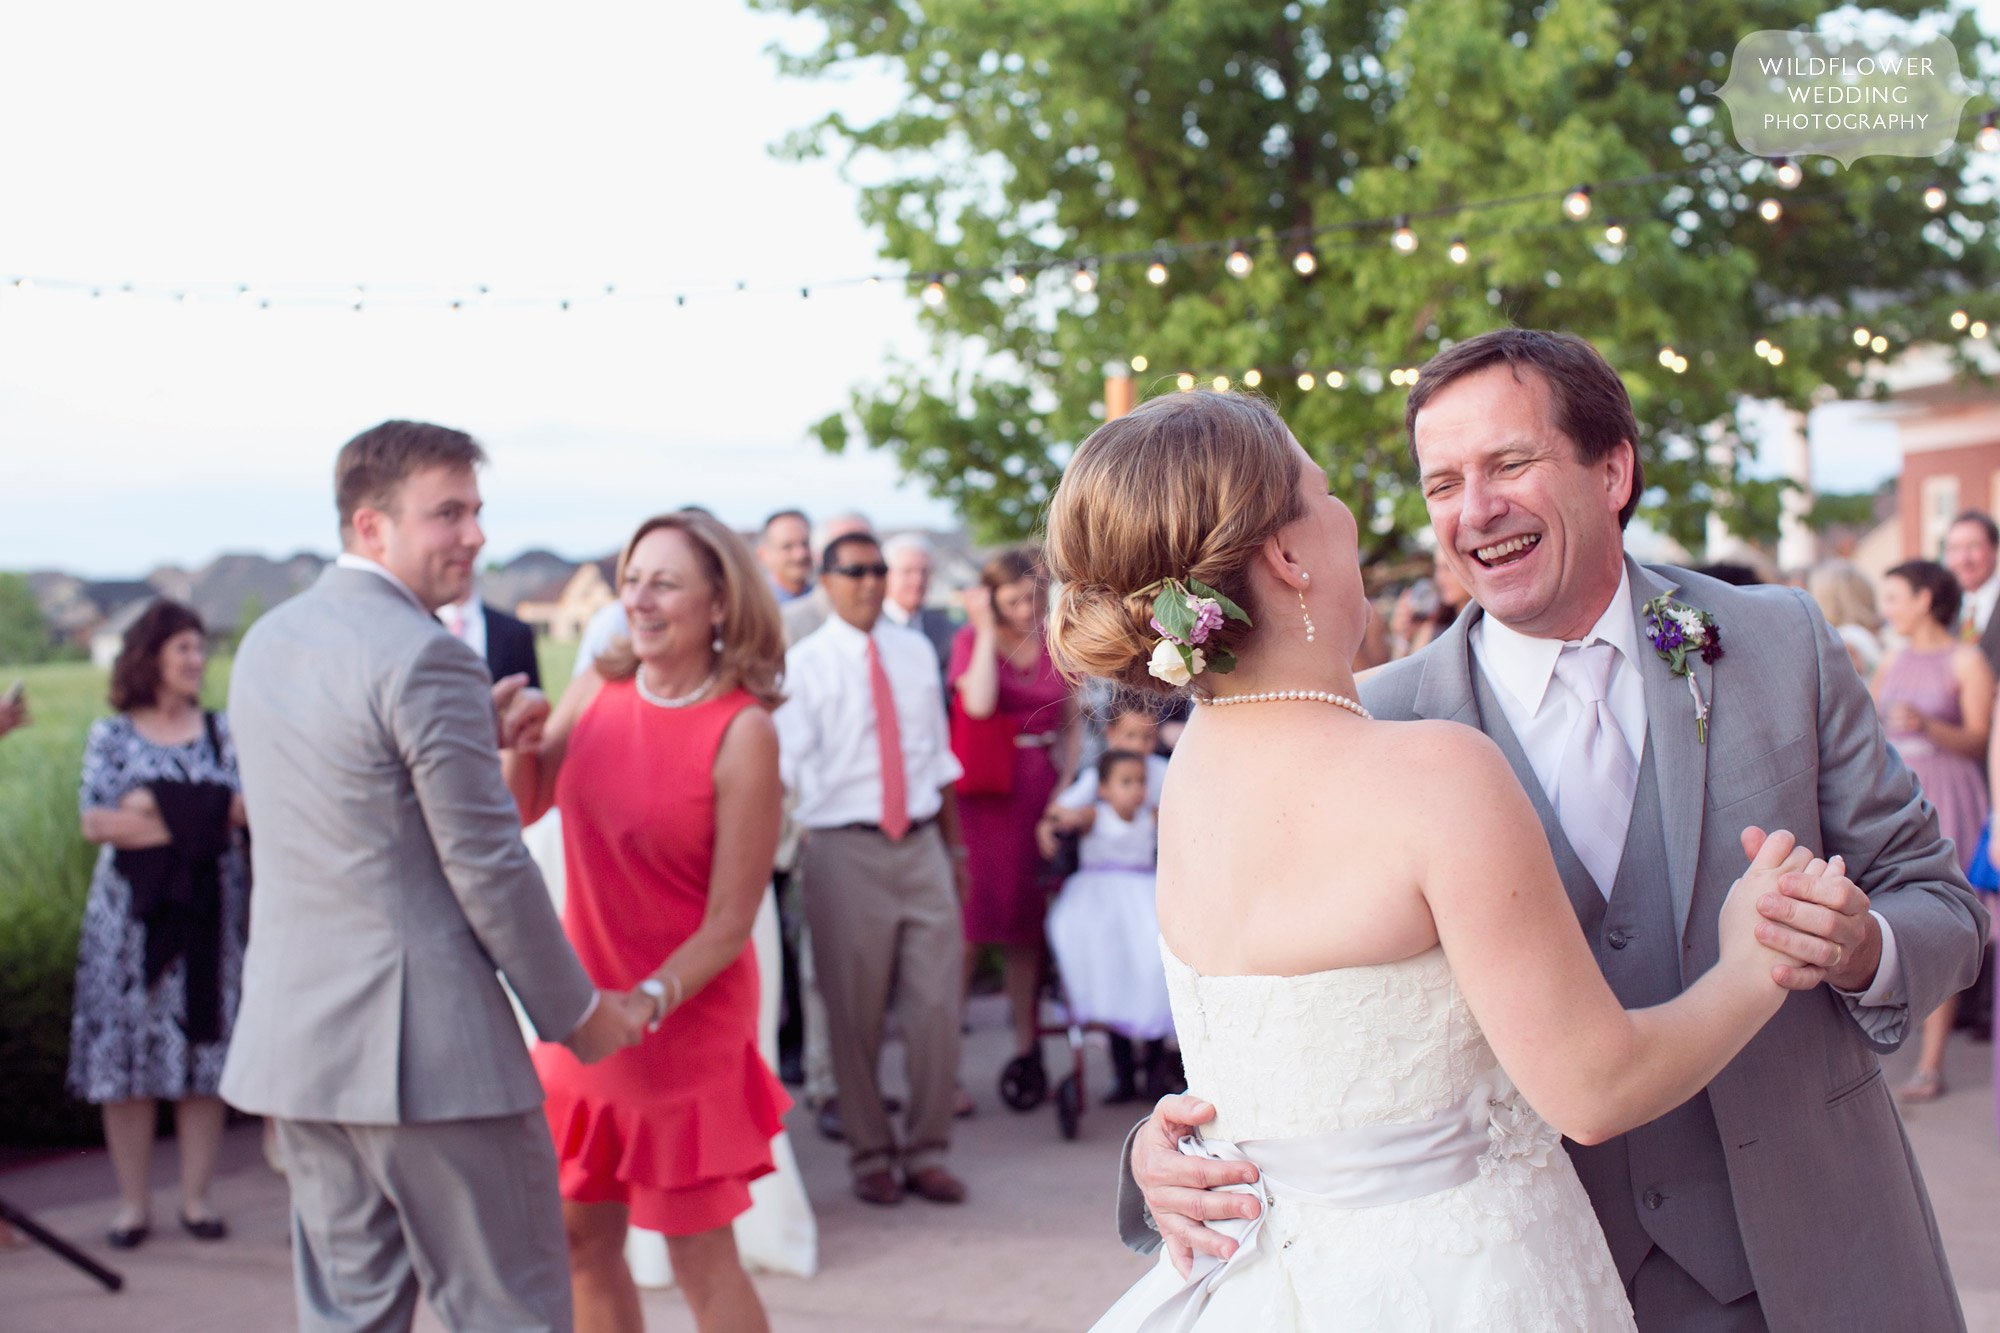 Father and daughter wedding dance at the Hawthorne Country Club in Columbia, MO.